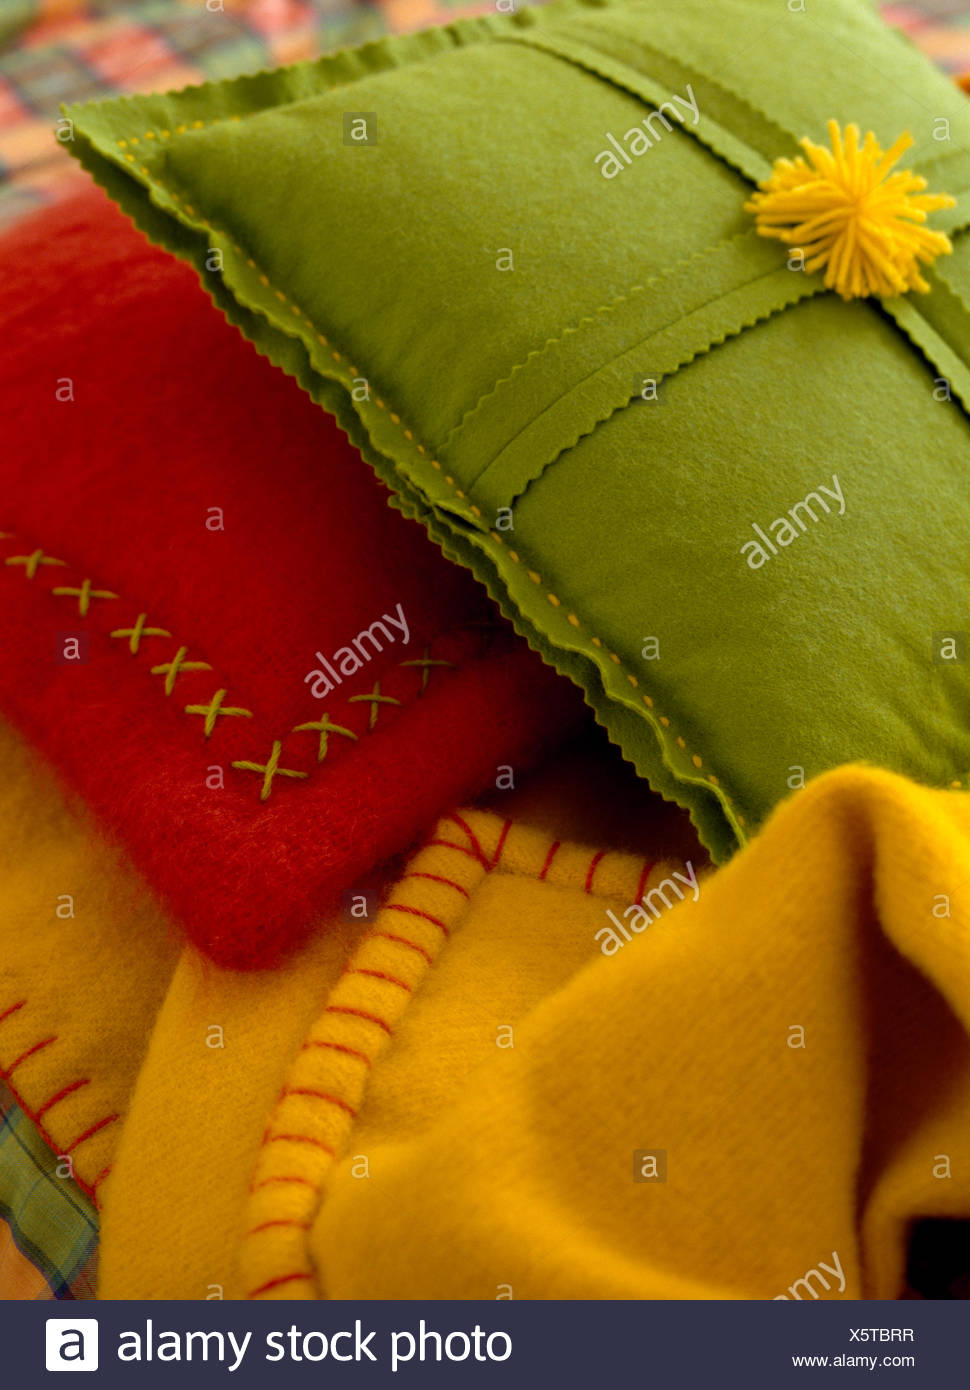 Close Up Of Colourful Felt Cushions With Decorative Cross Stitch And Blanket Stitch Stock Photo Alamy